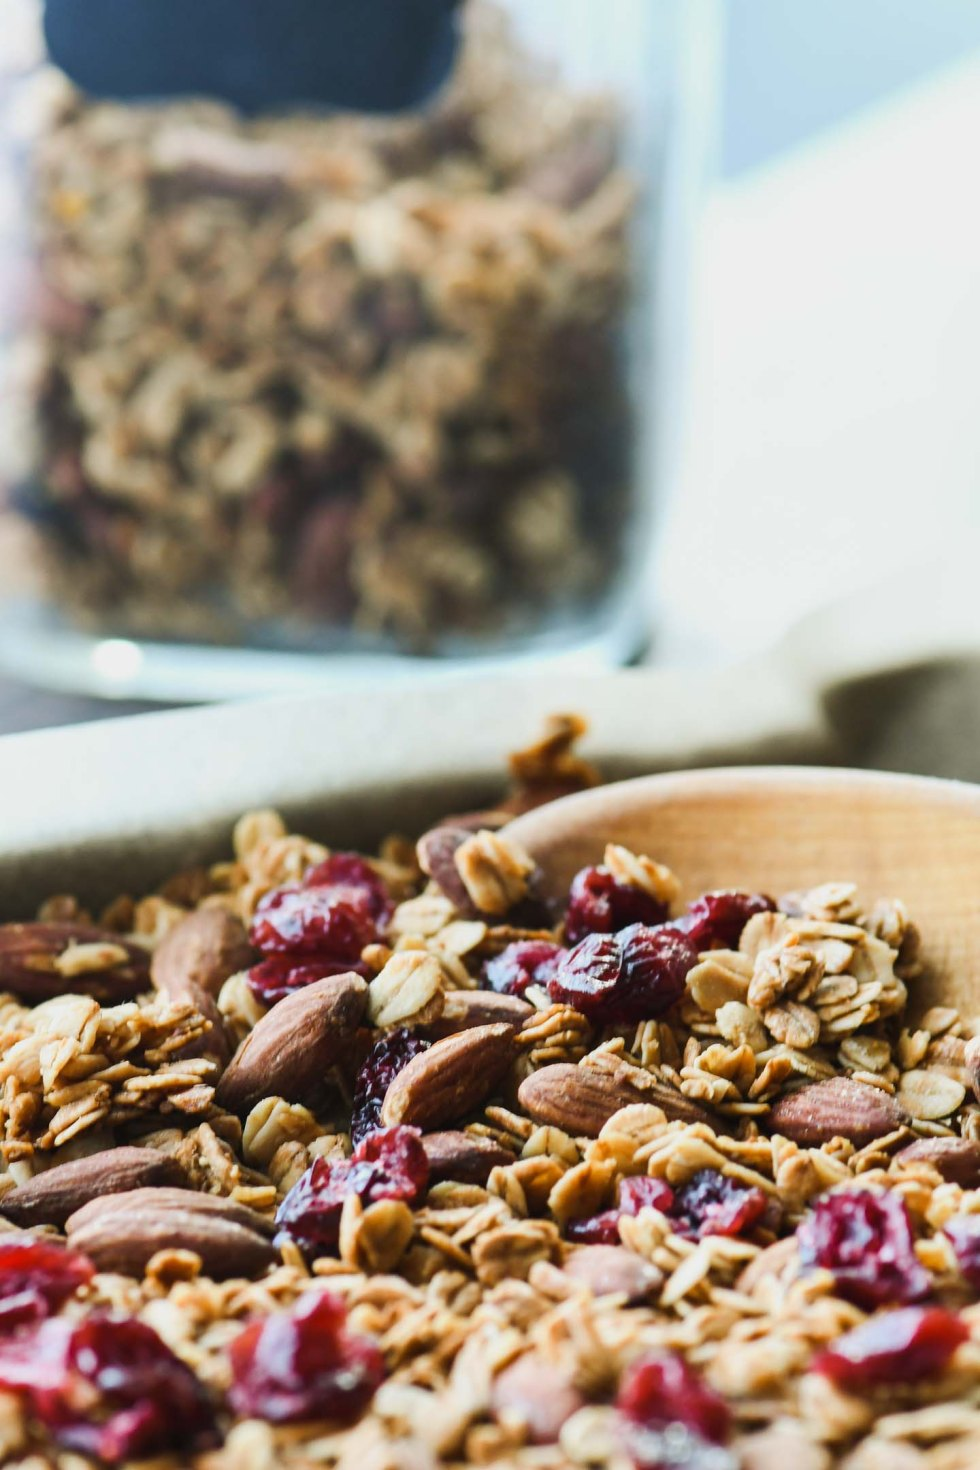 Honey flax granola with dried cranberries on a baking sheet